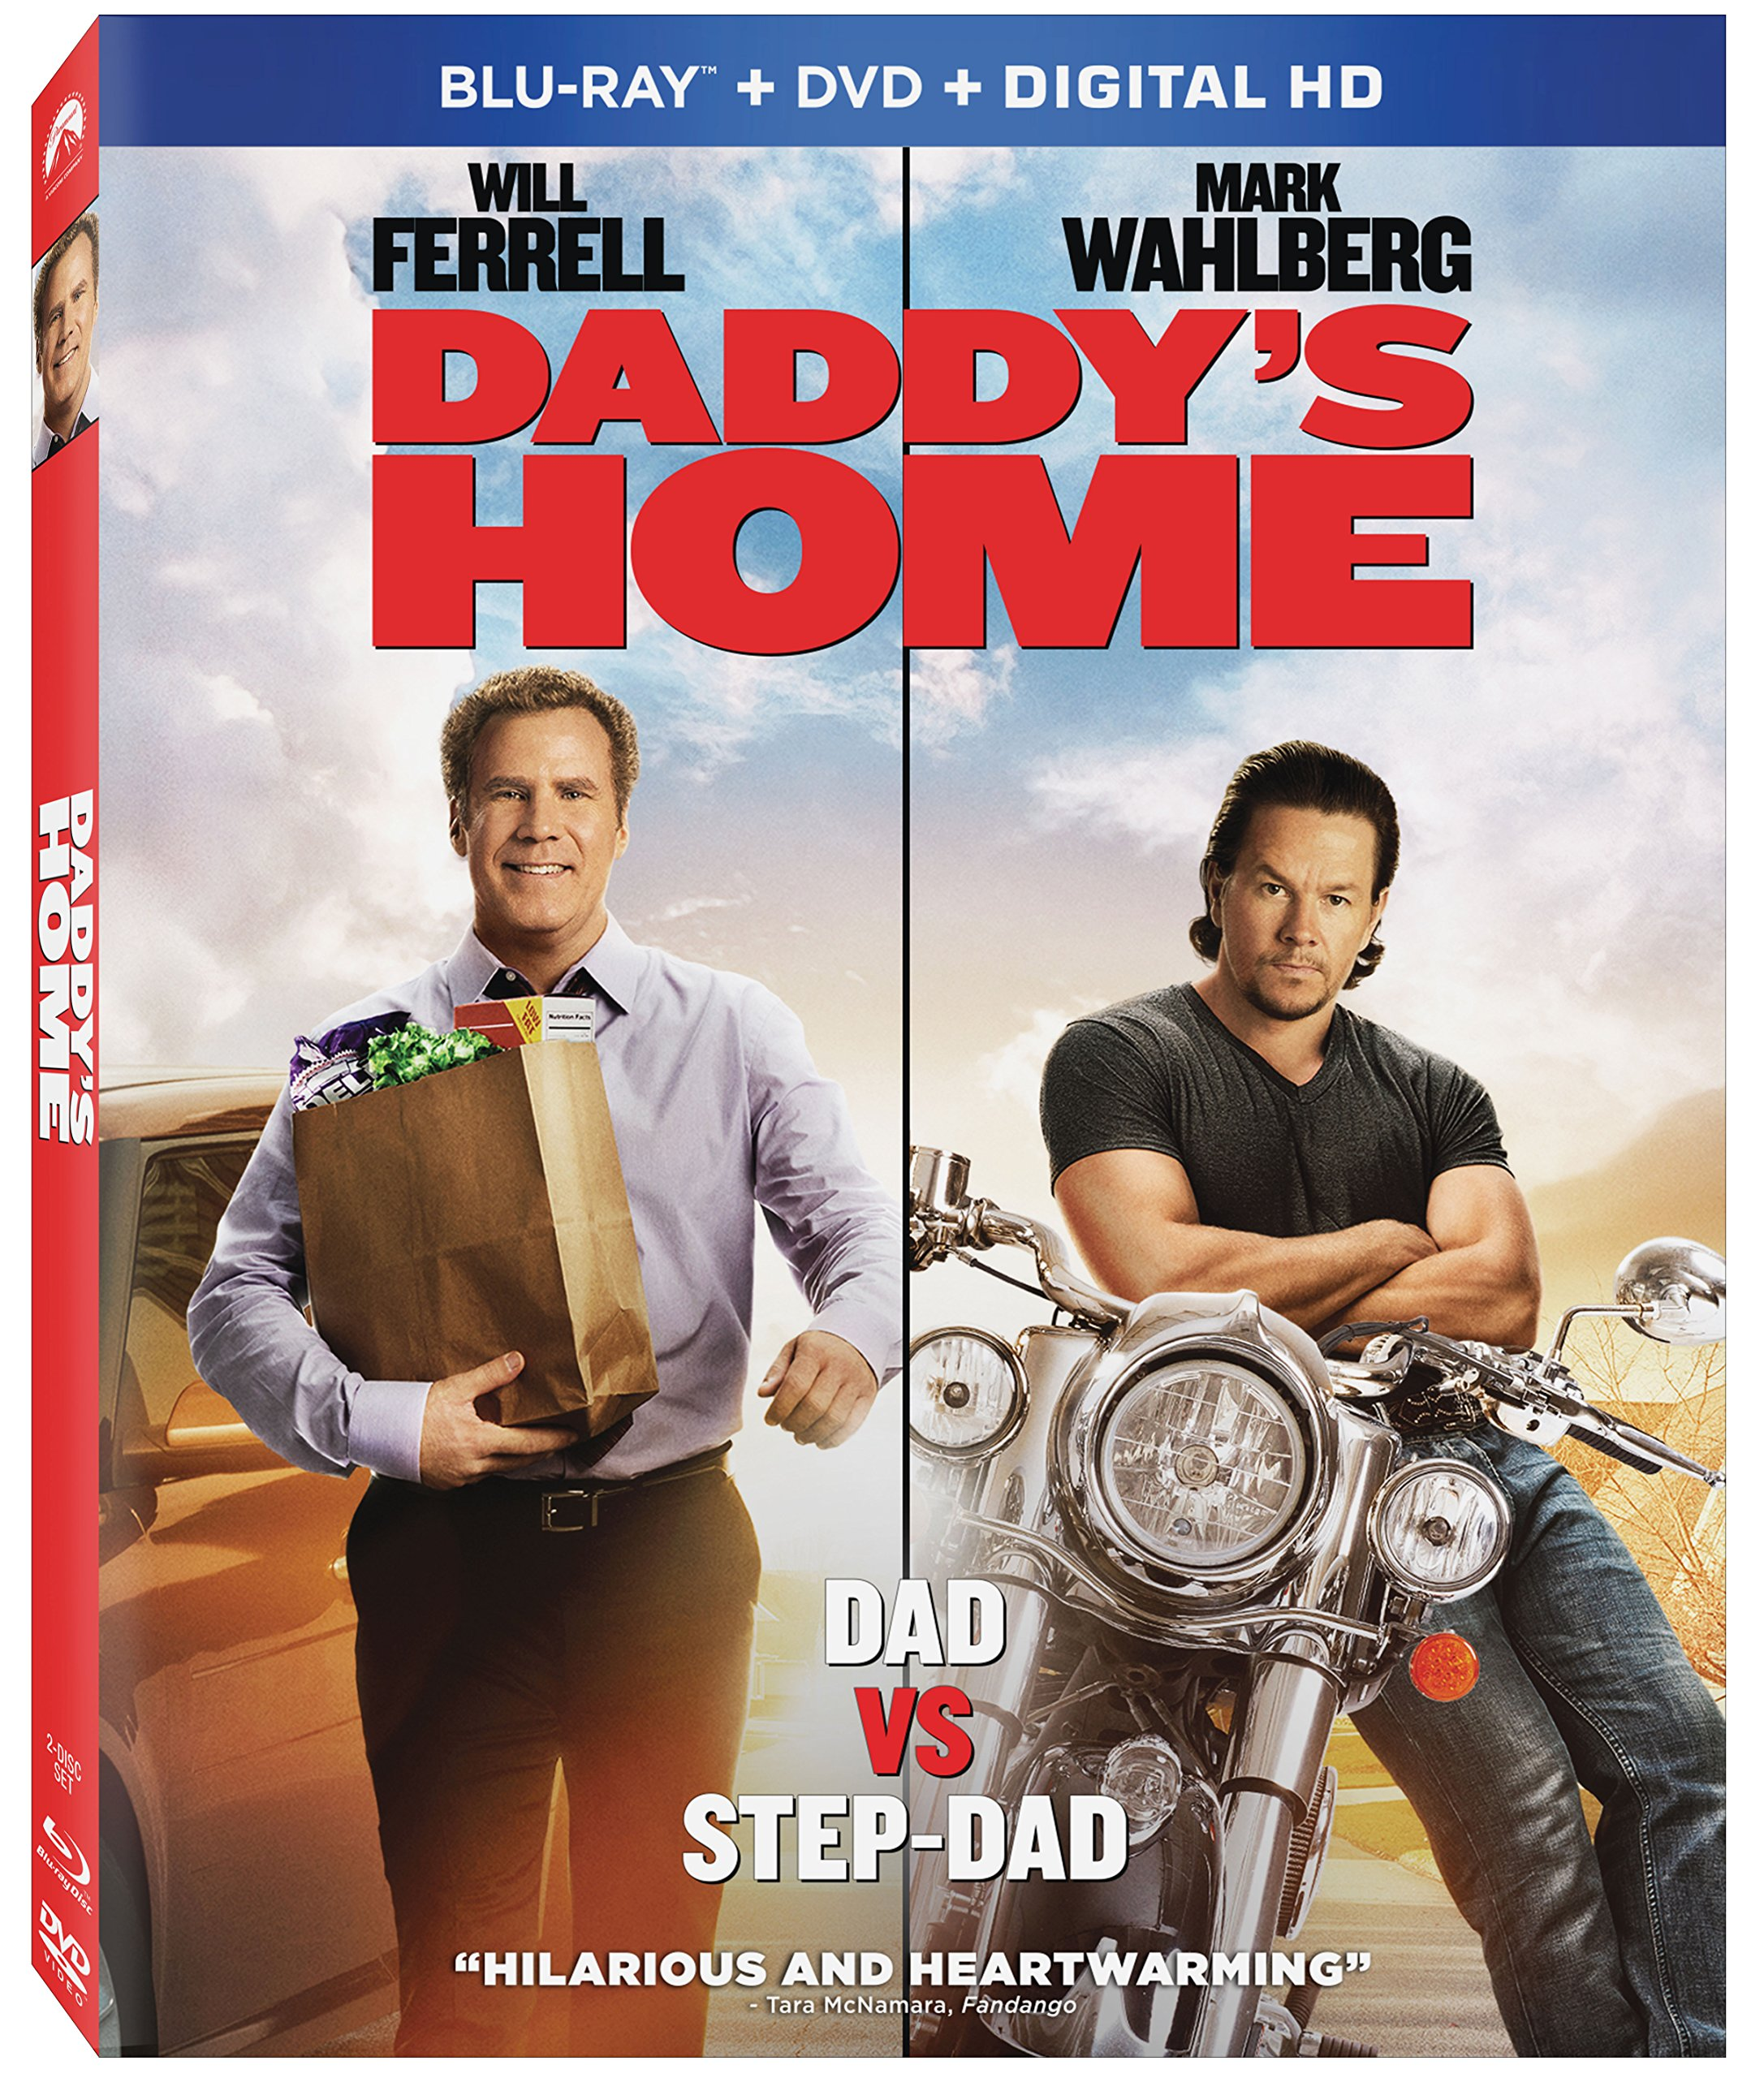 Blu-ray : Daddy's Home (With DVD, Widescreen, Digital Theater System, Dubbed, )